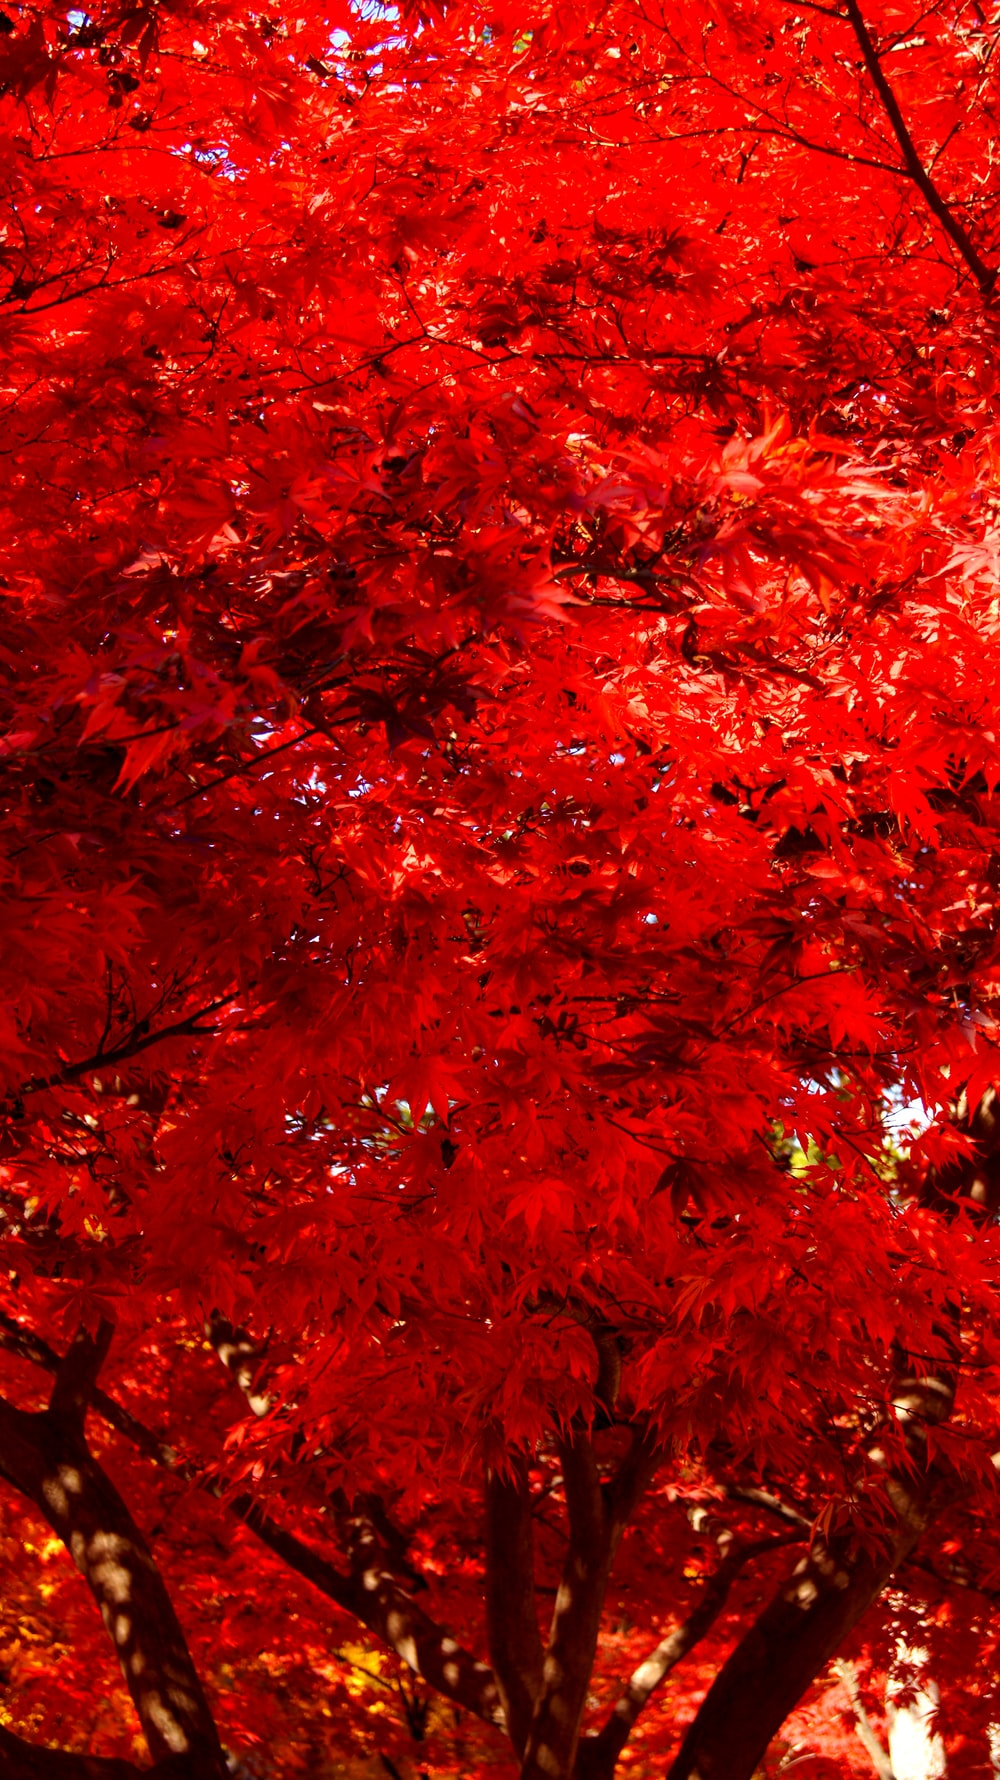 red-leafed tree during daytime